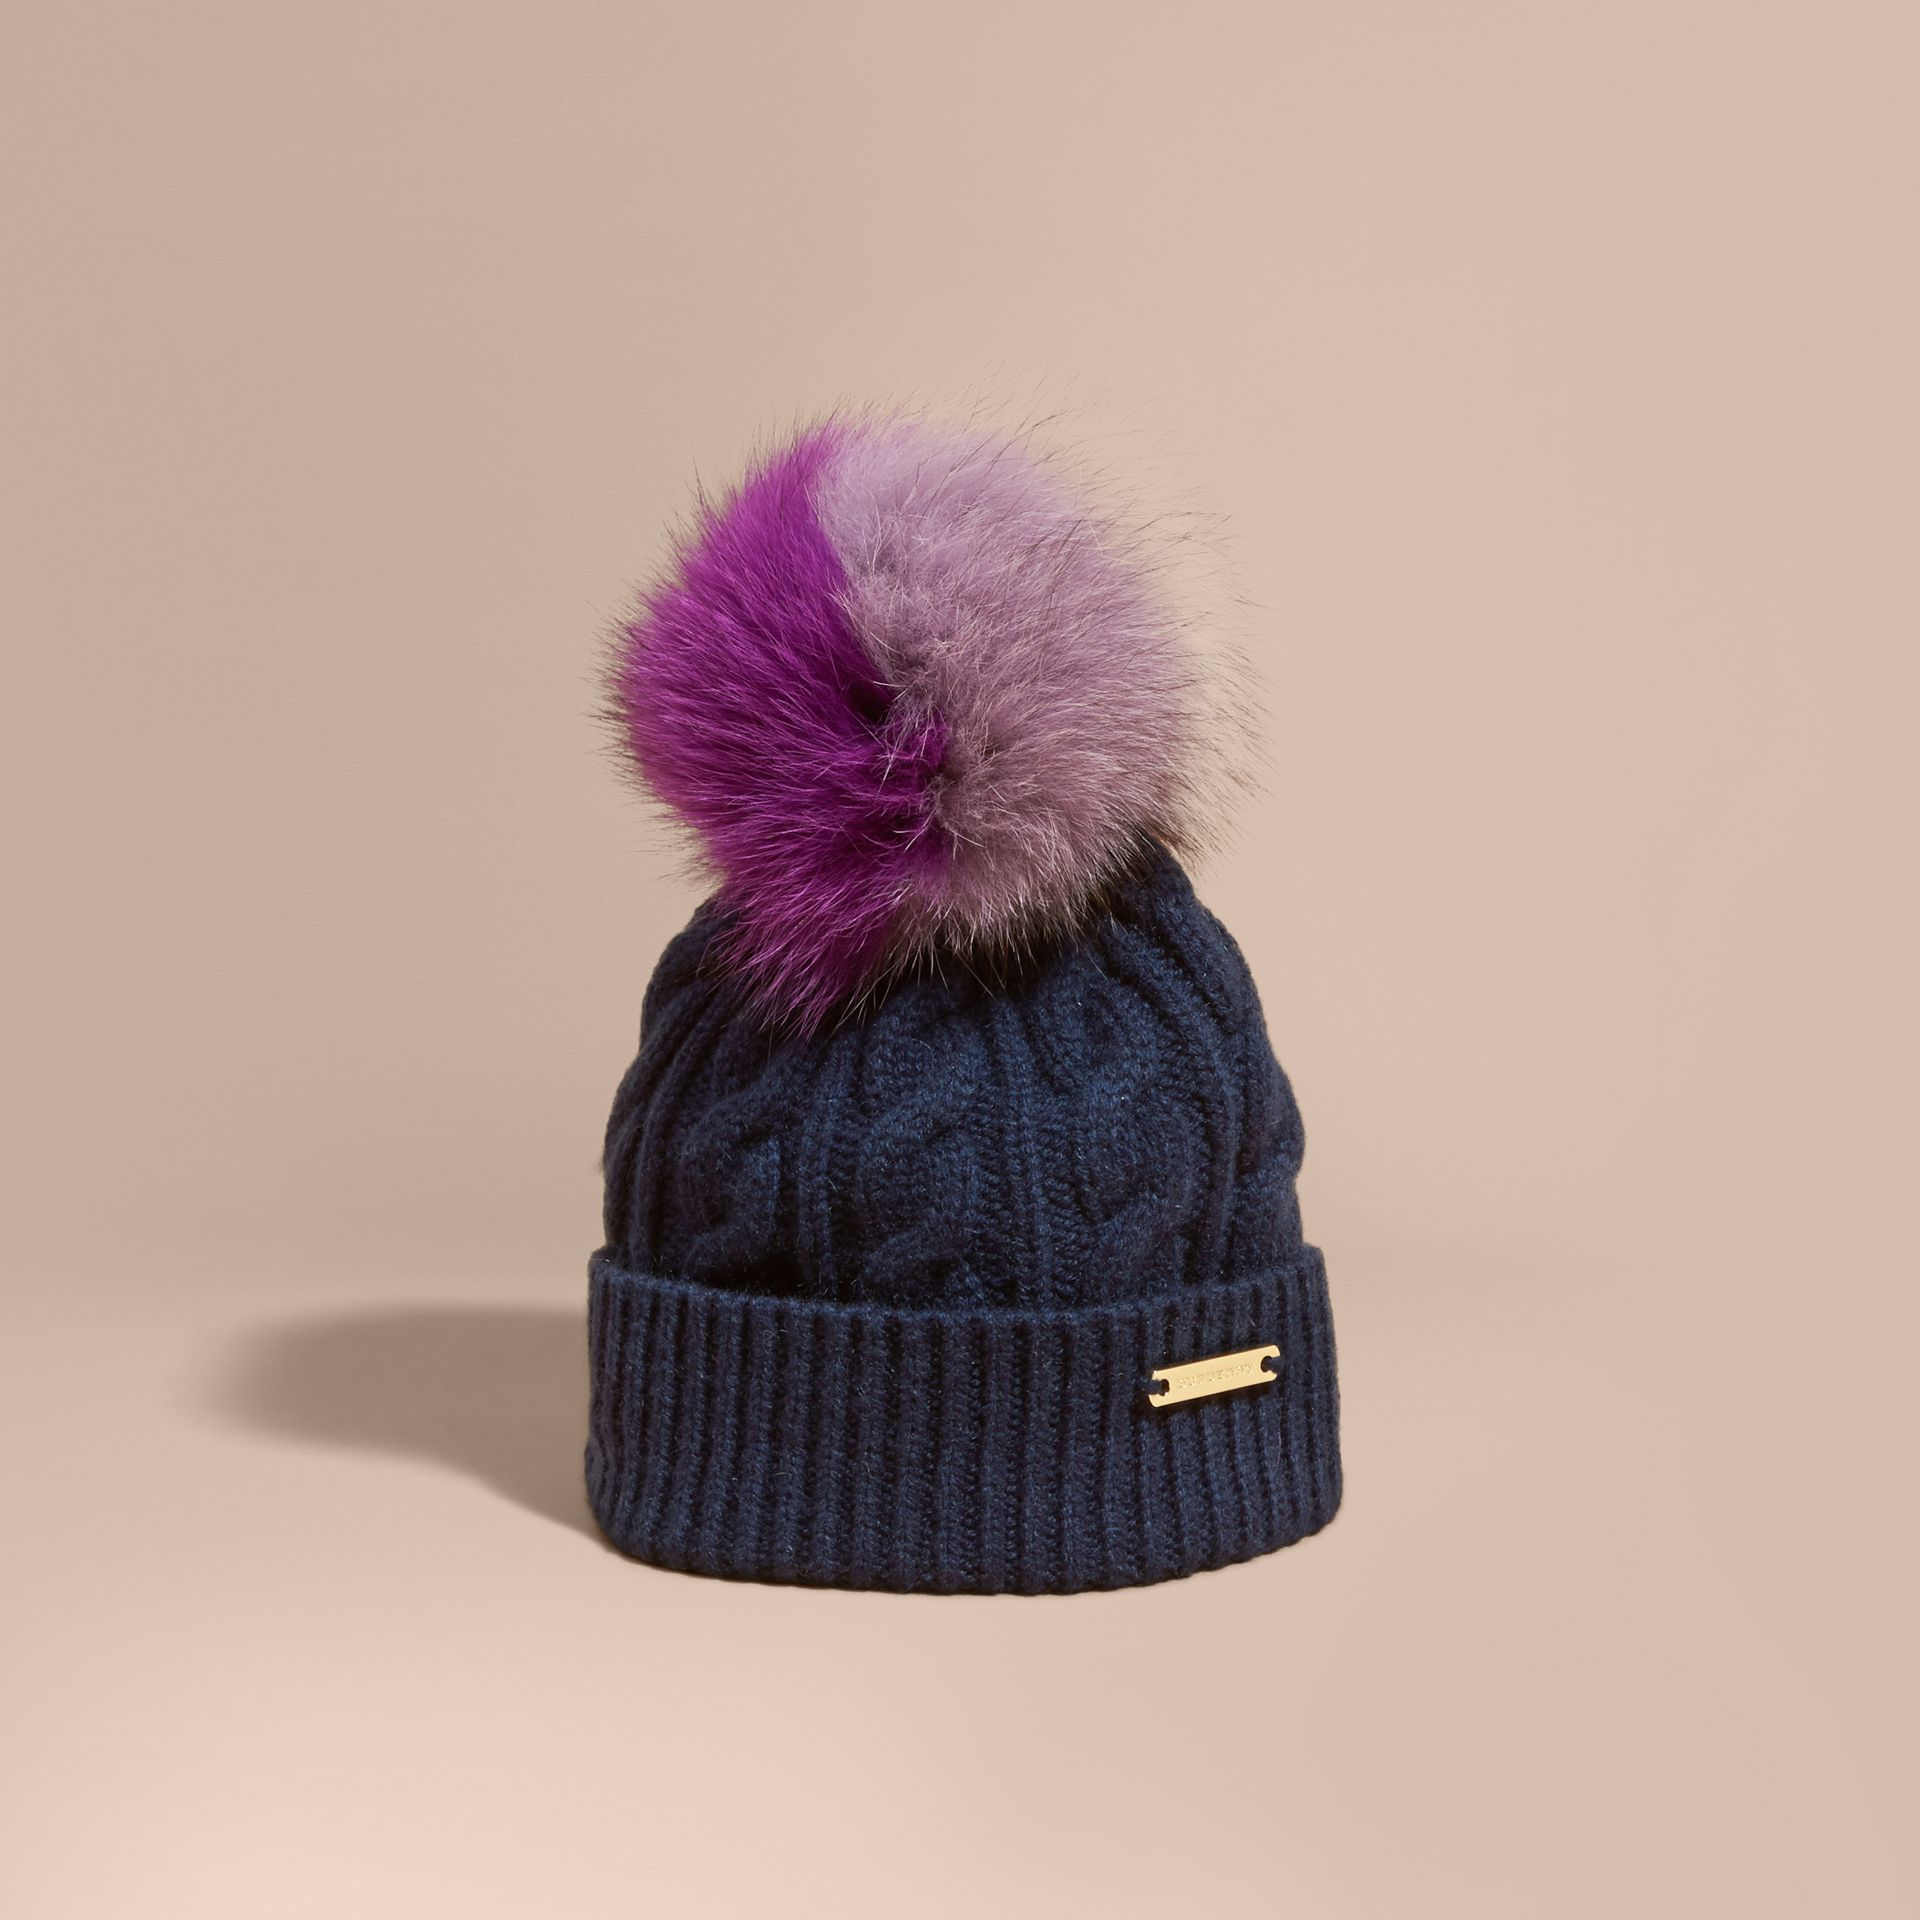 Wool Cashmere Beanie with Fur Pom-Pom in Navy - gallery image 1